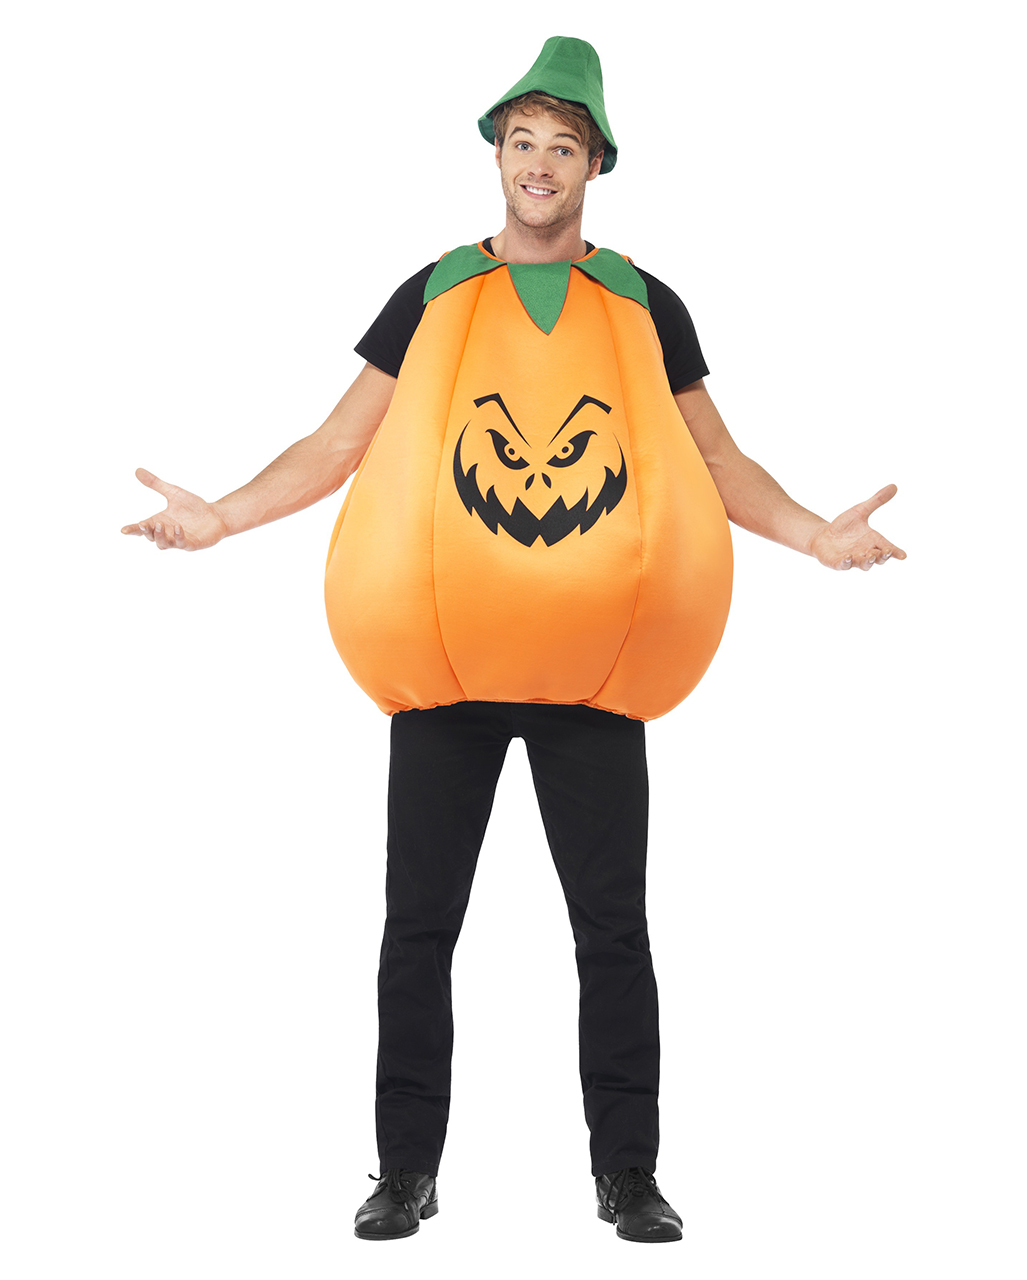 Eerie pumpkin costume disguise yourself as a grim pumpkin horror eerie pumpkin costume solutioingenieria Images